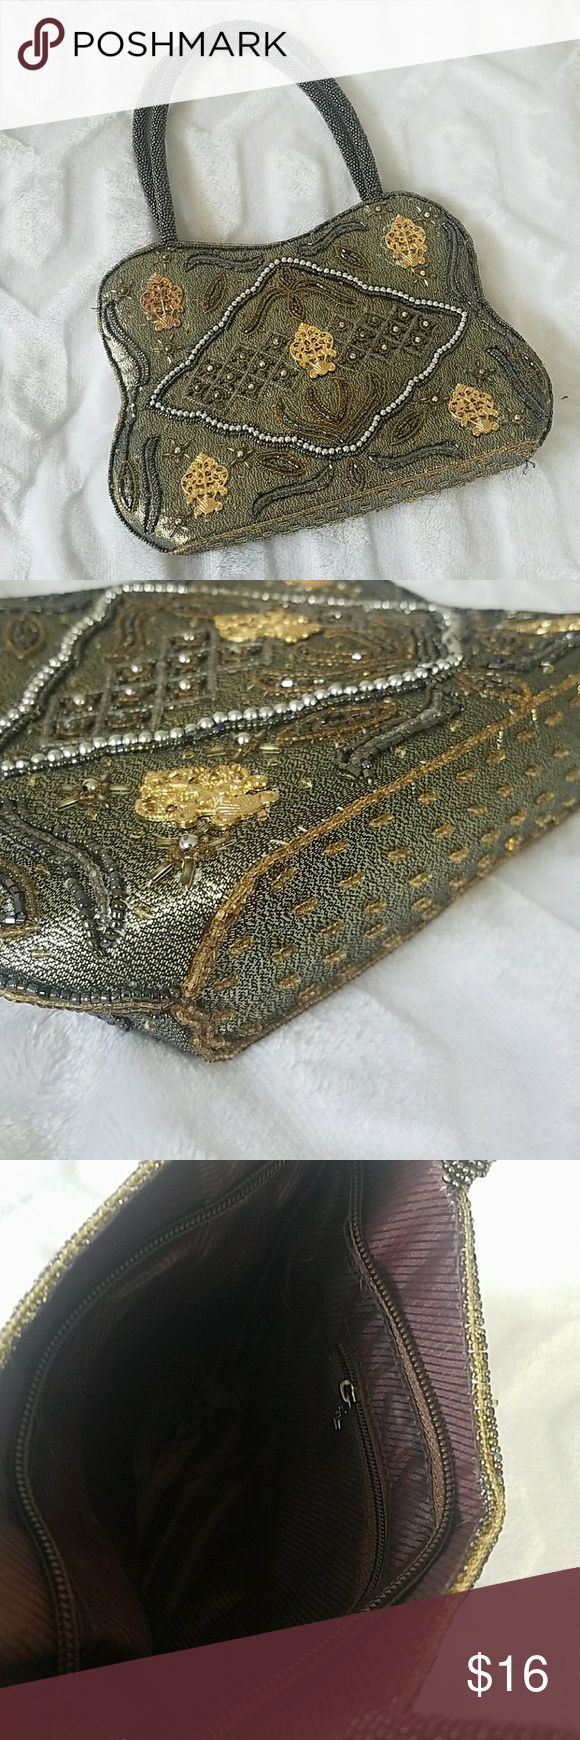 "New, Stunning Beaded Purse/Handbag NWOT, Measures about 8.5""W x 7""H Beautiful olive green/sage/gold beaded purse with gold accents and grey/brown/silver beaded. Beaded handles that extend about 6.5"" high. Bags Mini Bags"